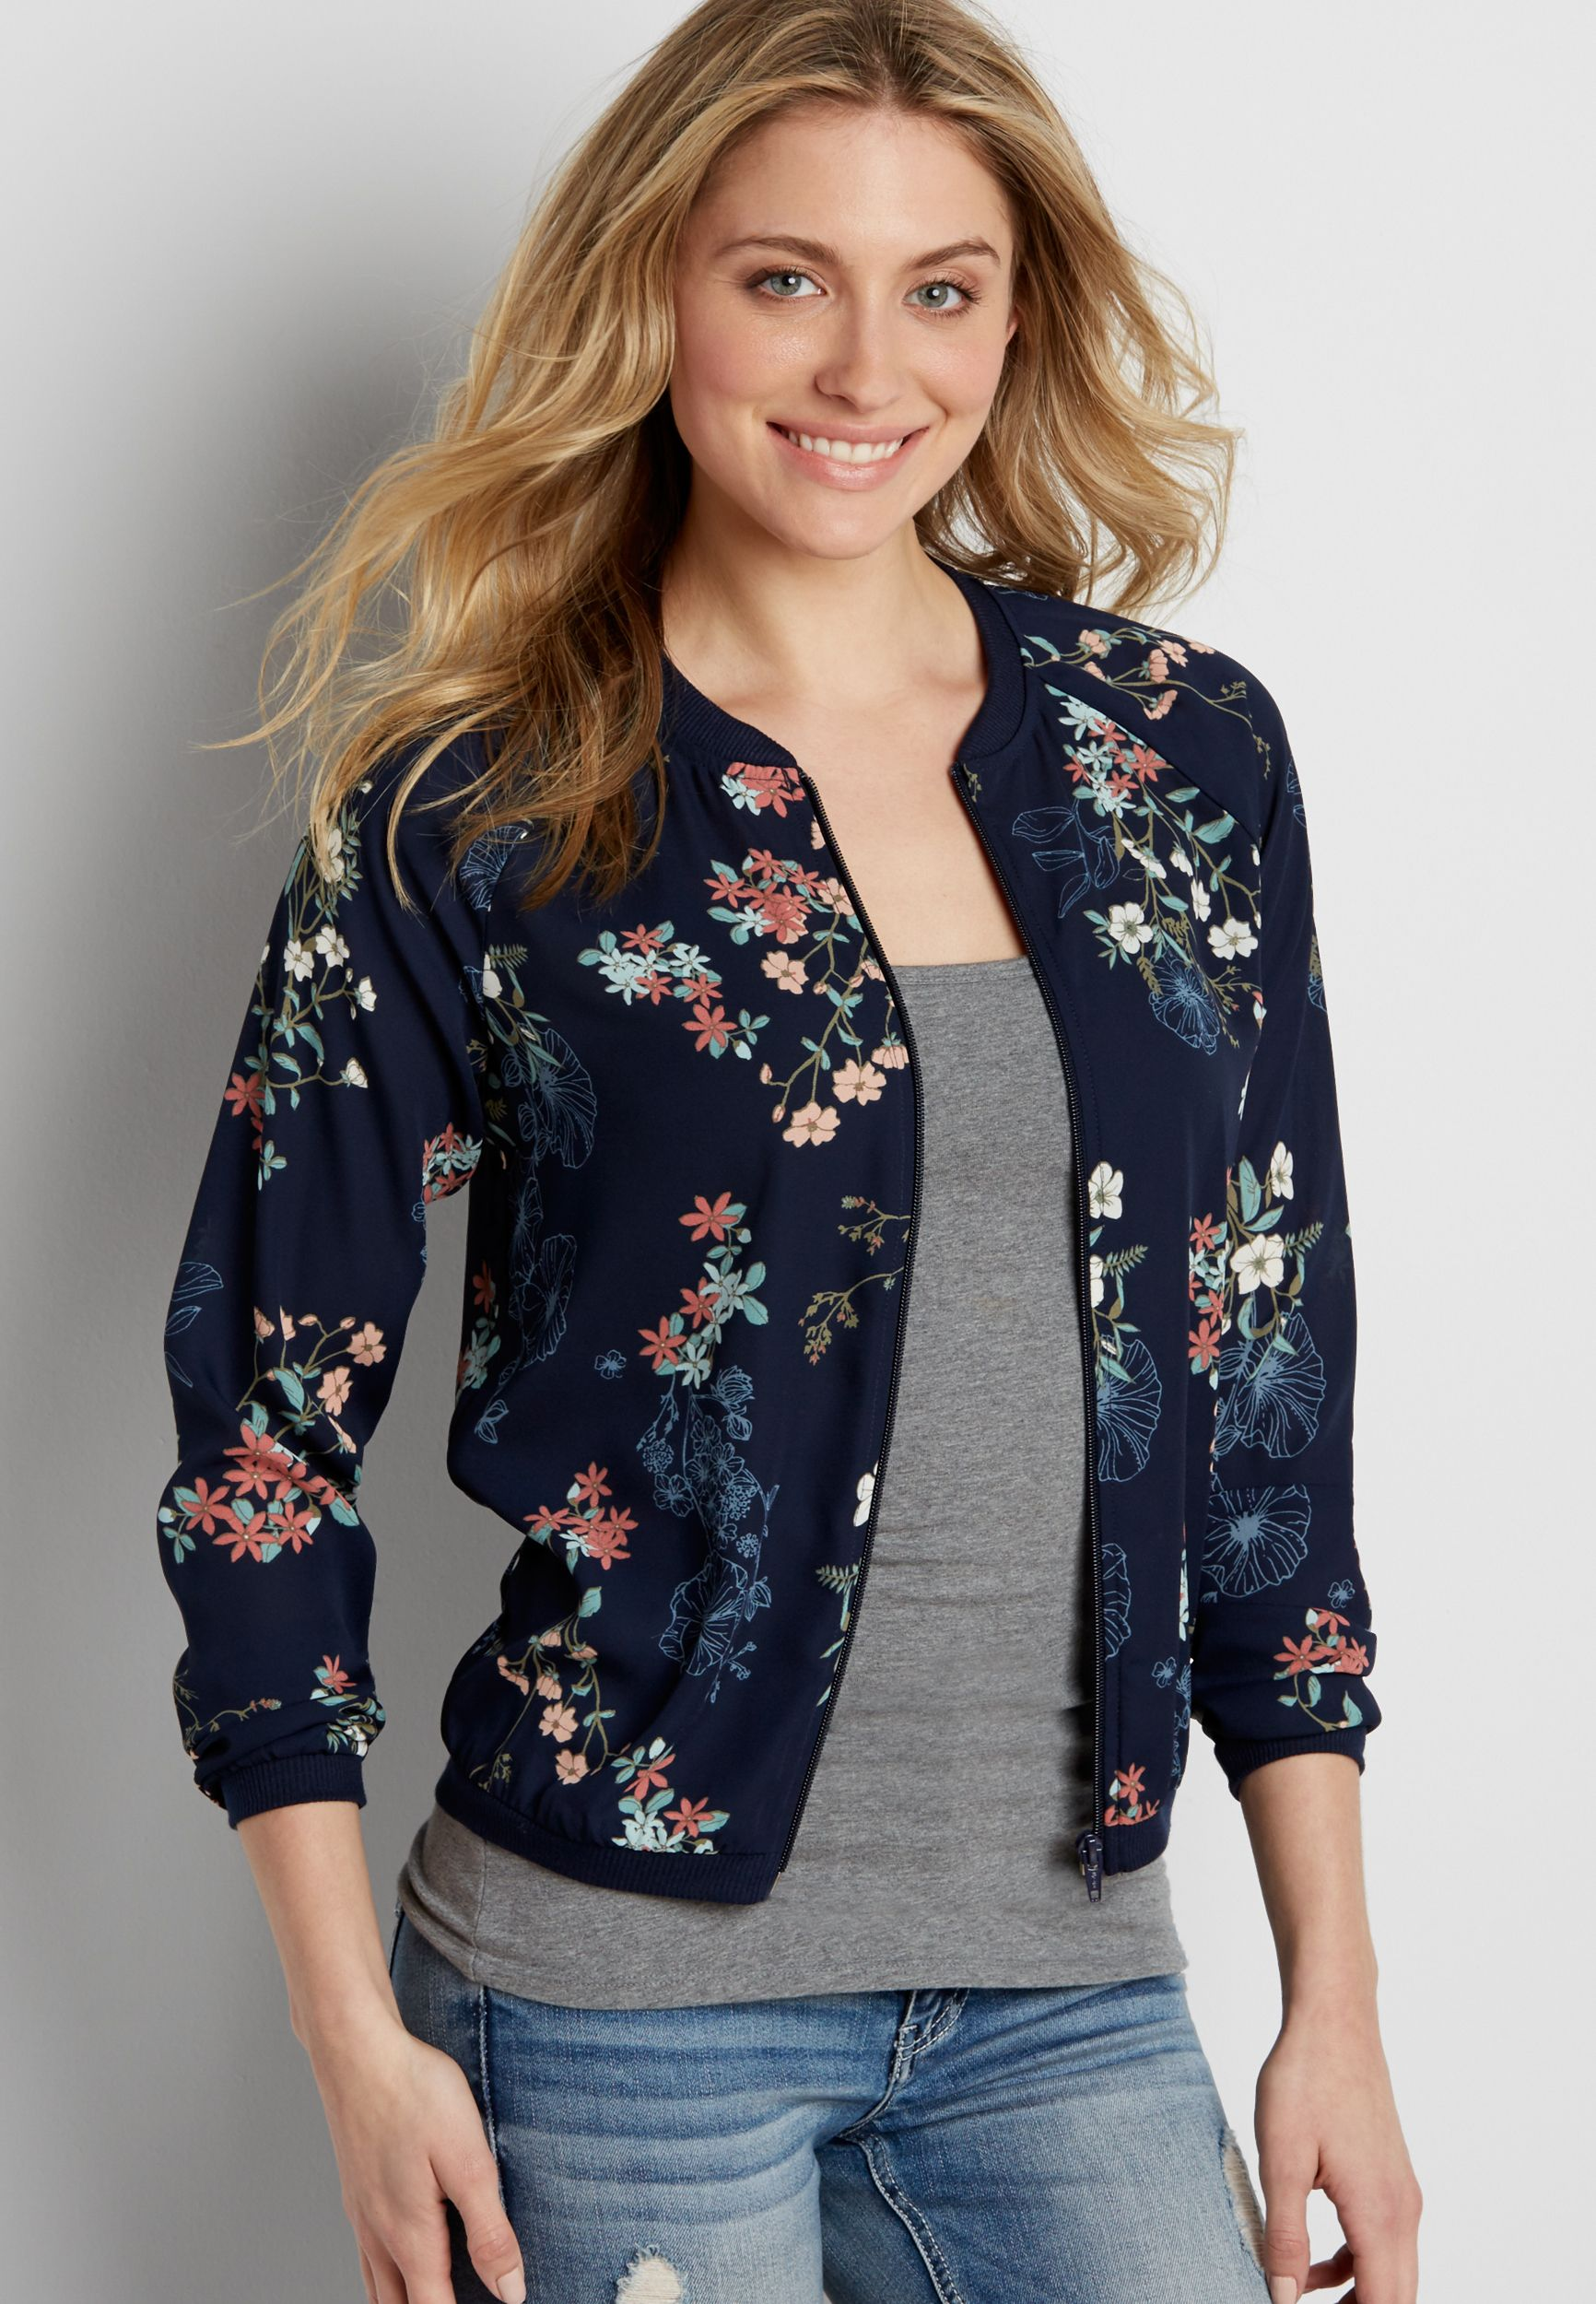 8e4528ea2 chiffon bomber jacket in navy blue floral print | Part 3 in 2019 ...